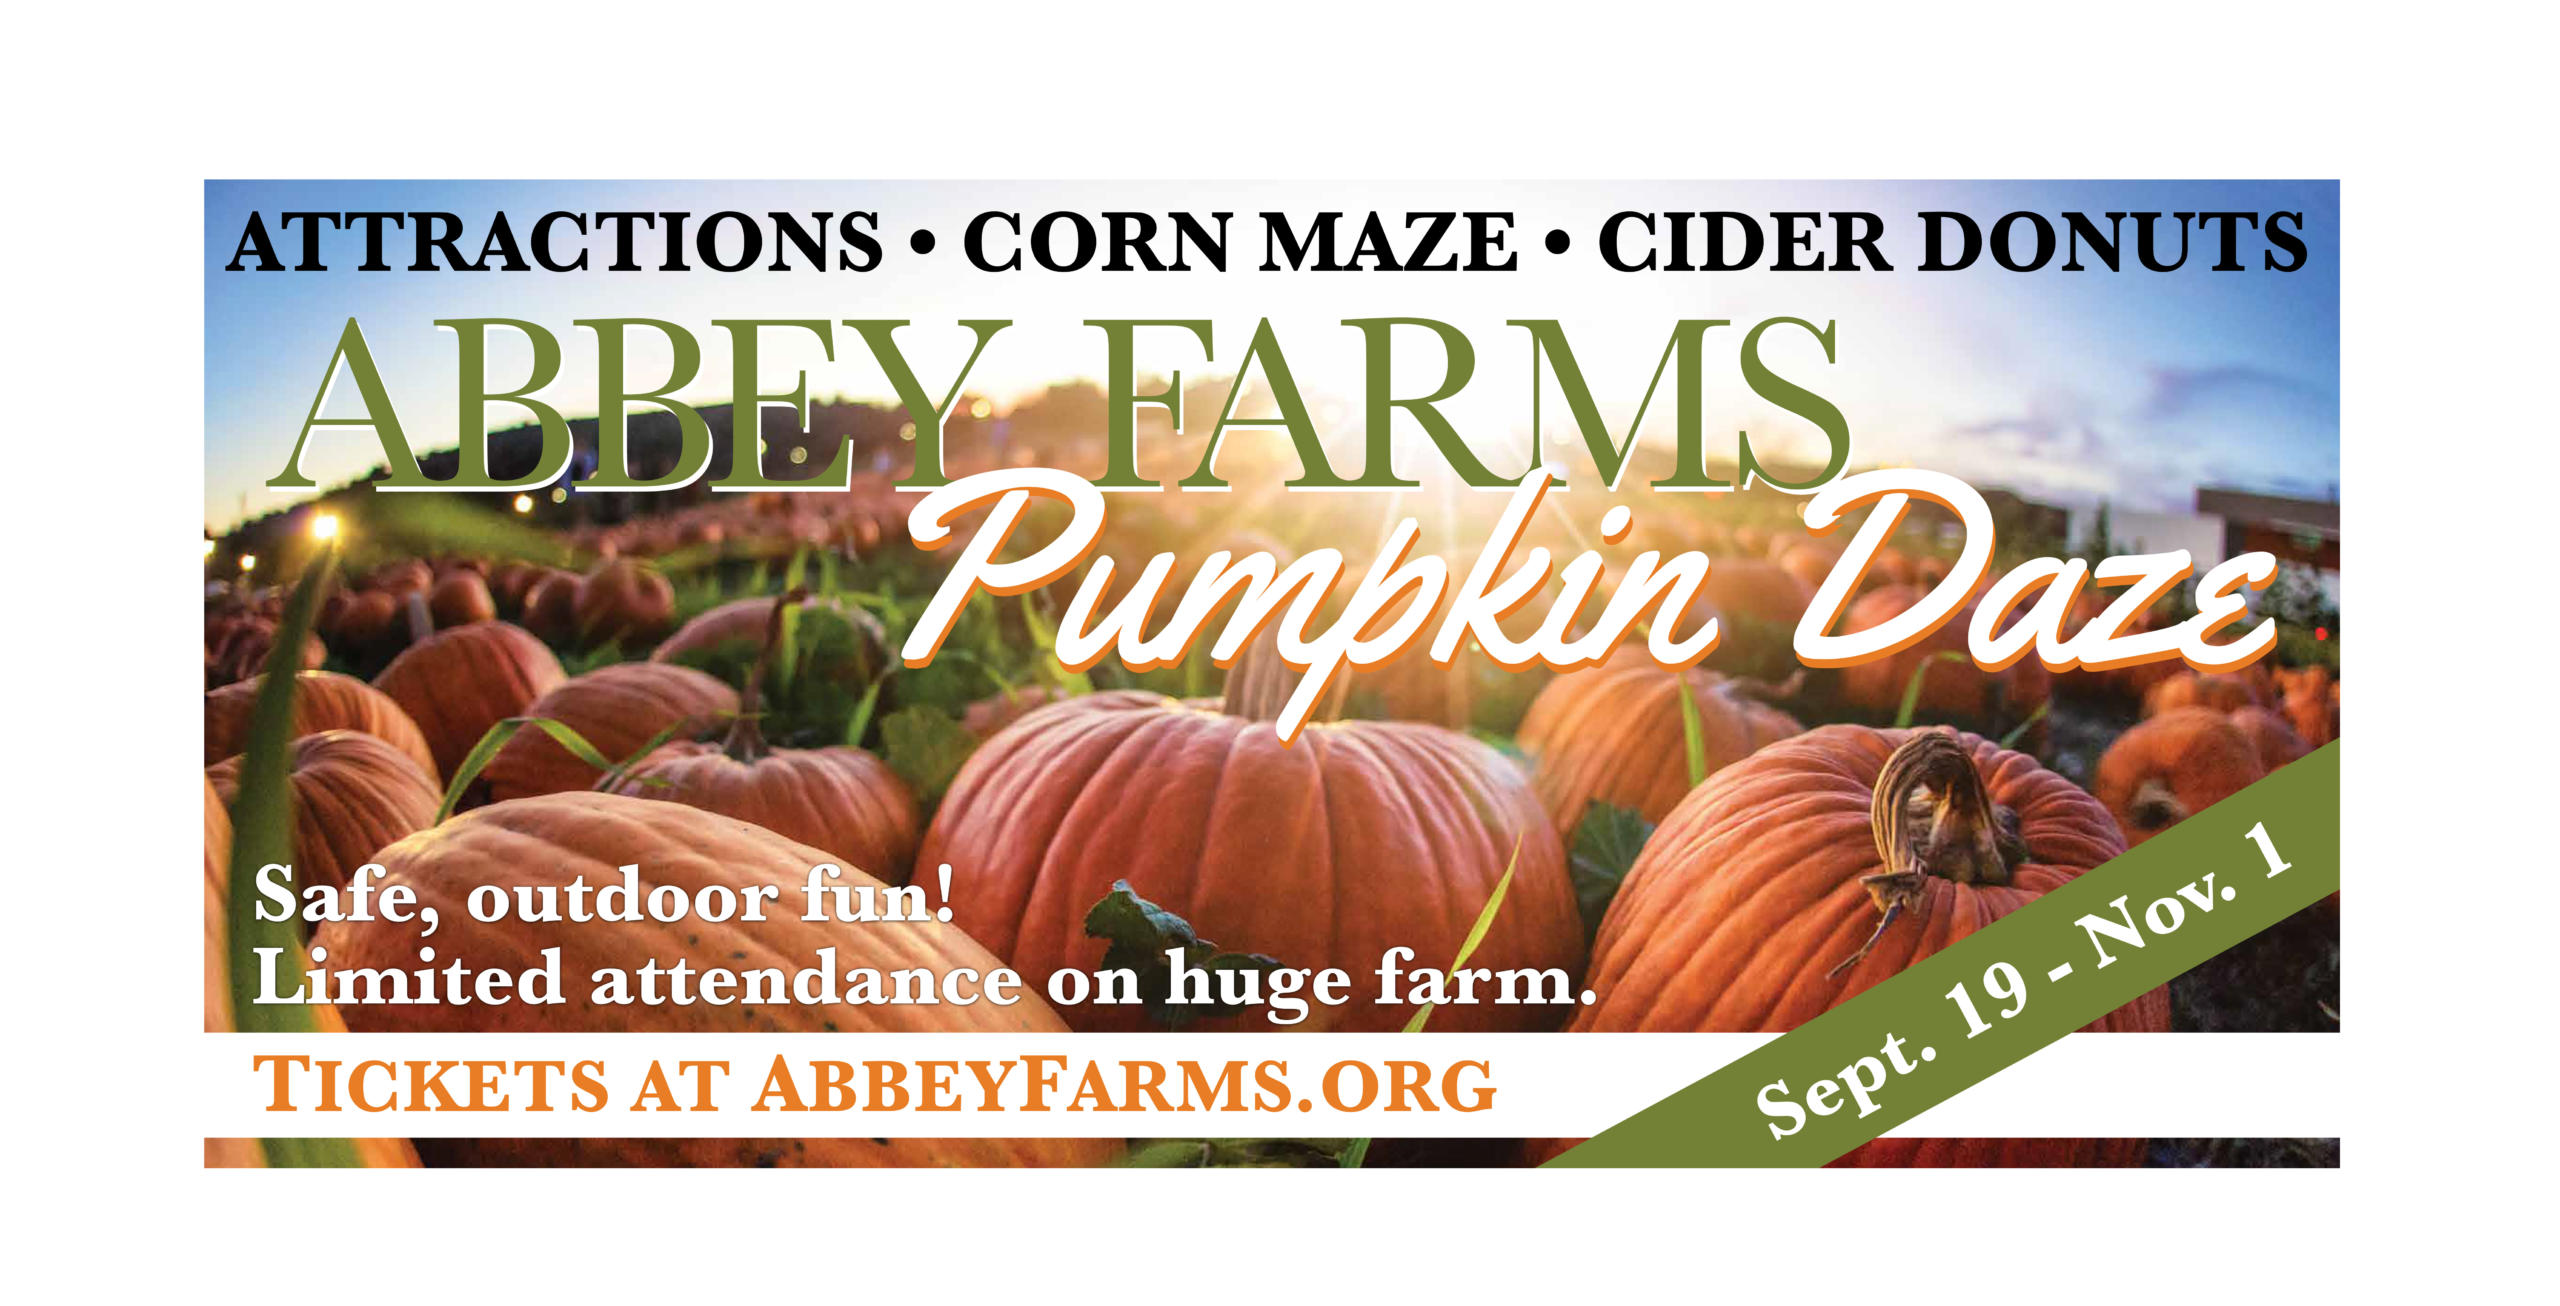 Abbey Farms Pumpkin Daze